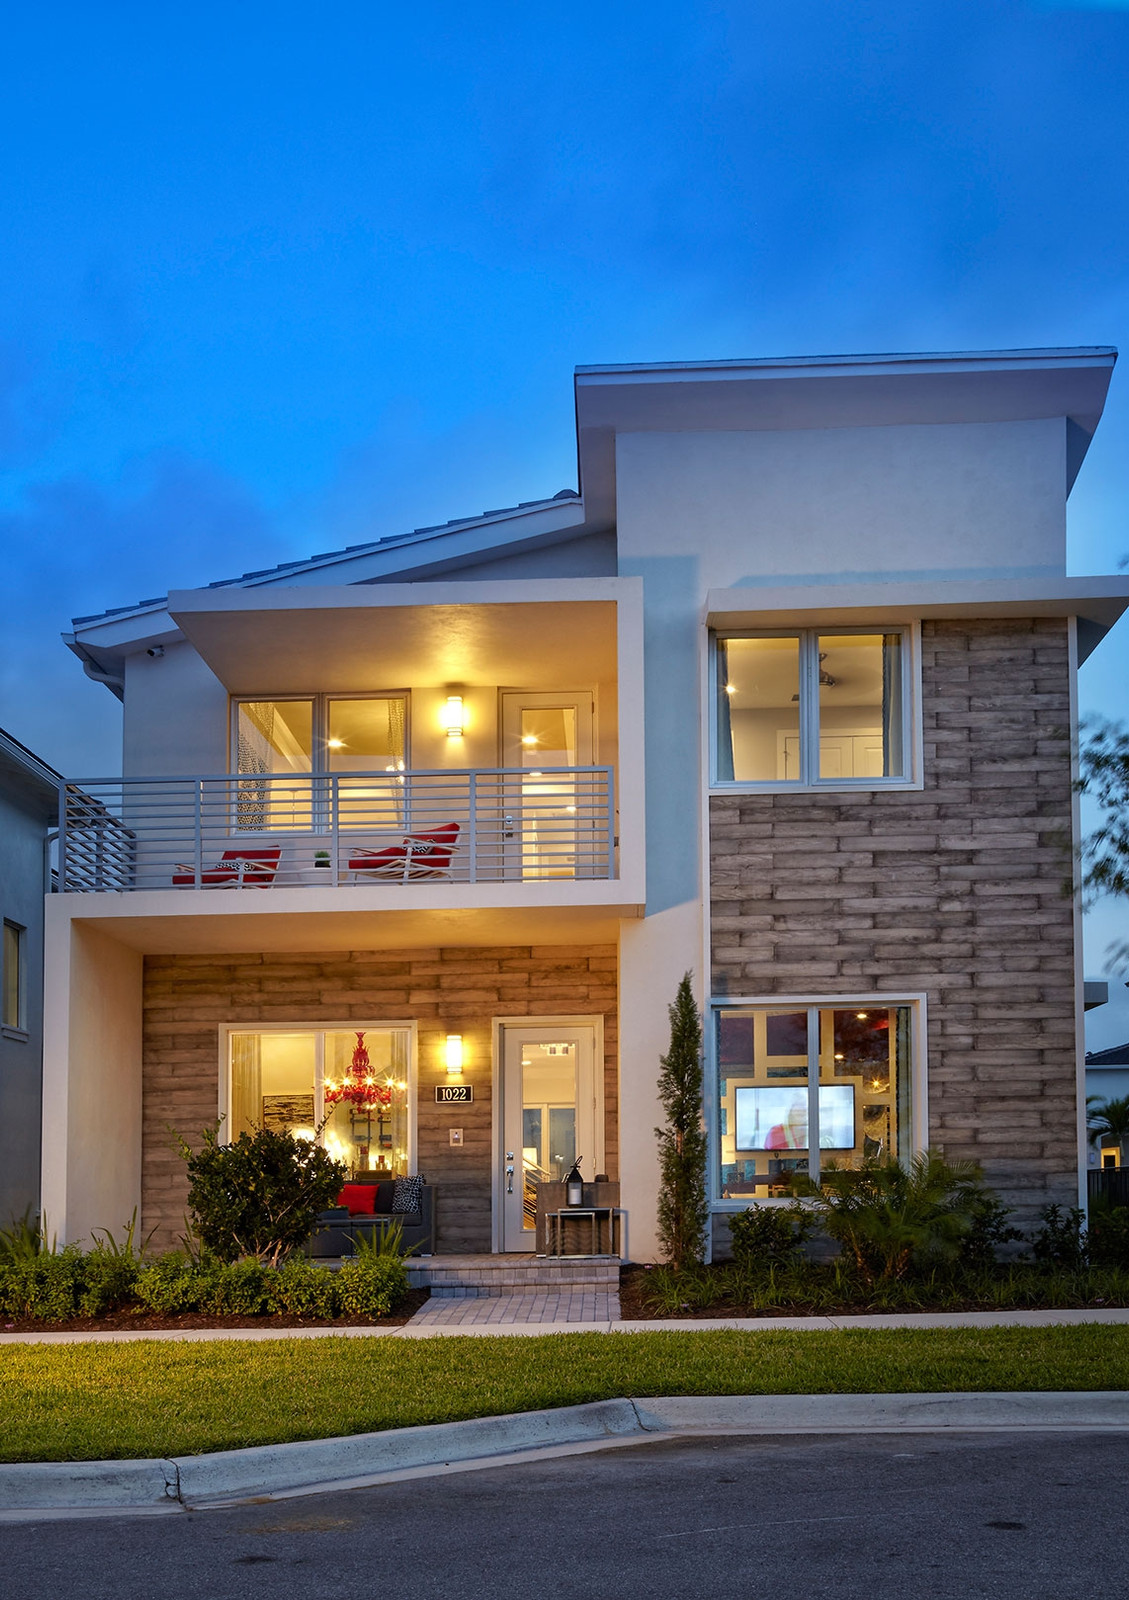 The Alton Park C Model Is One Of The Most Popular New Homes In Palm Beach  Gardens | Alton | Alton Palm Beach Gardens | Best New Homes Palm Beach  Gardens